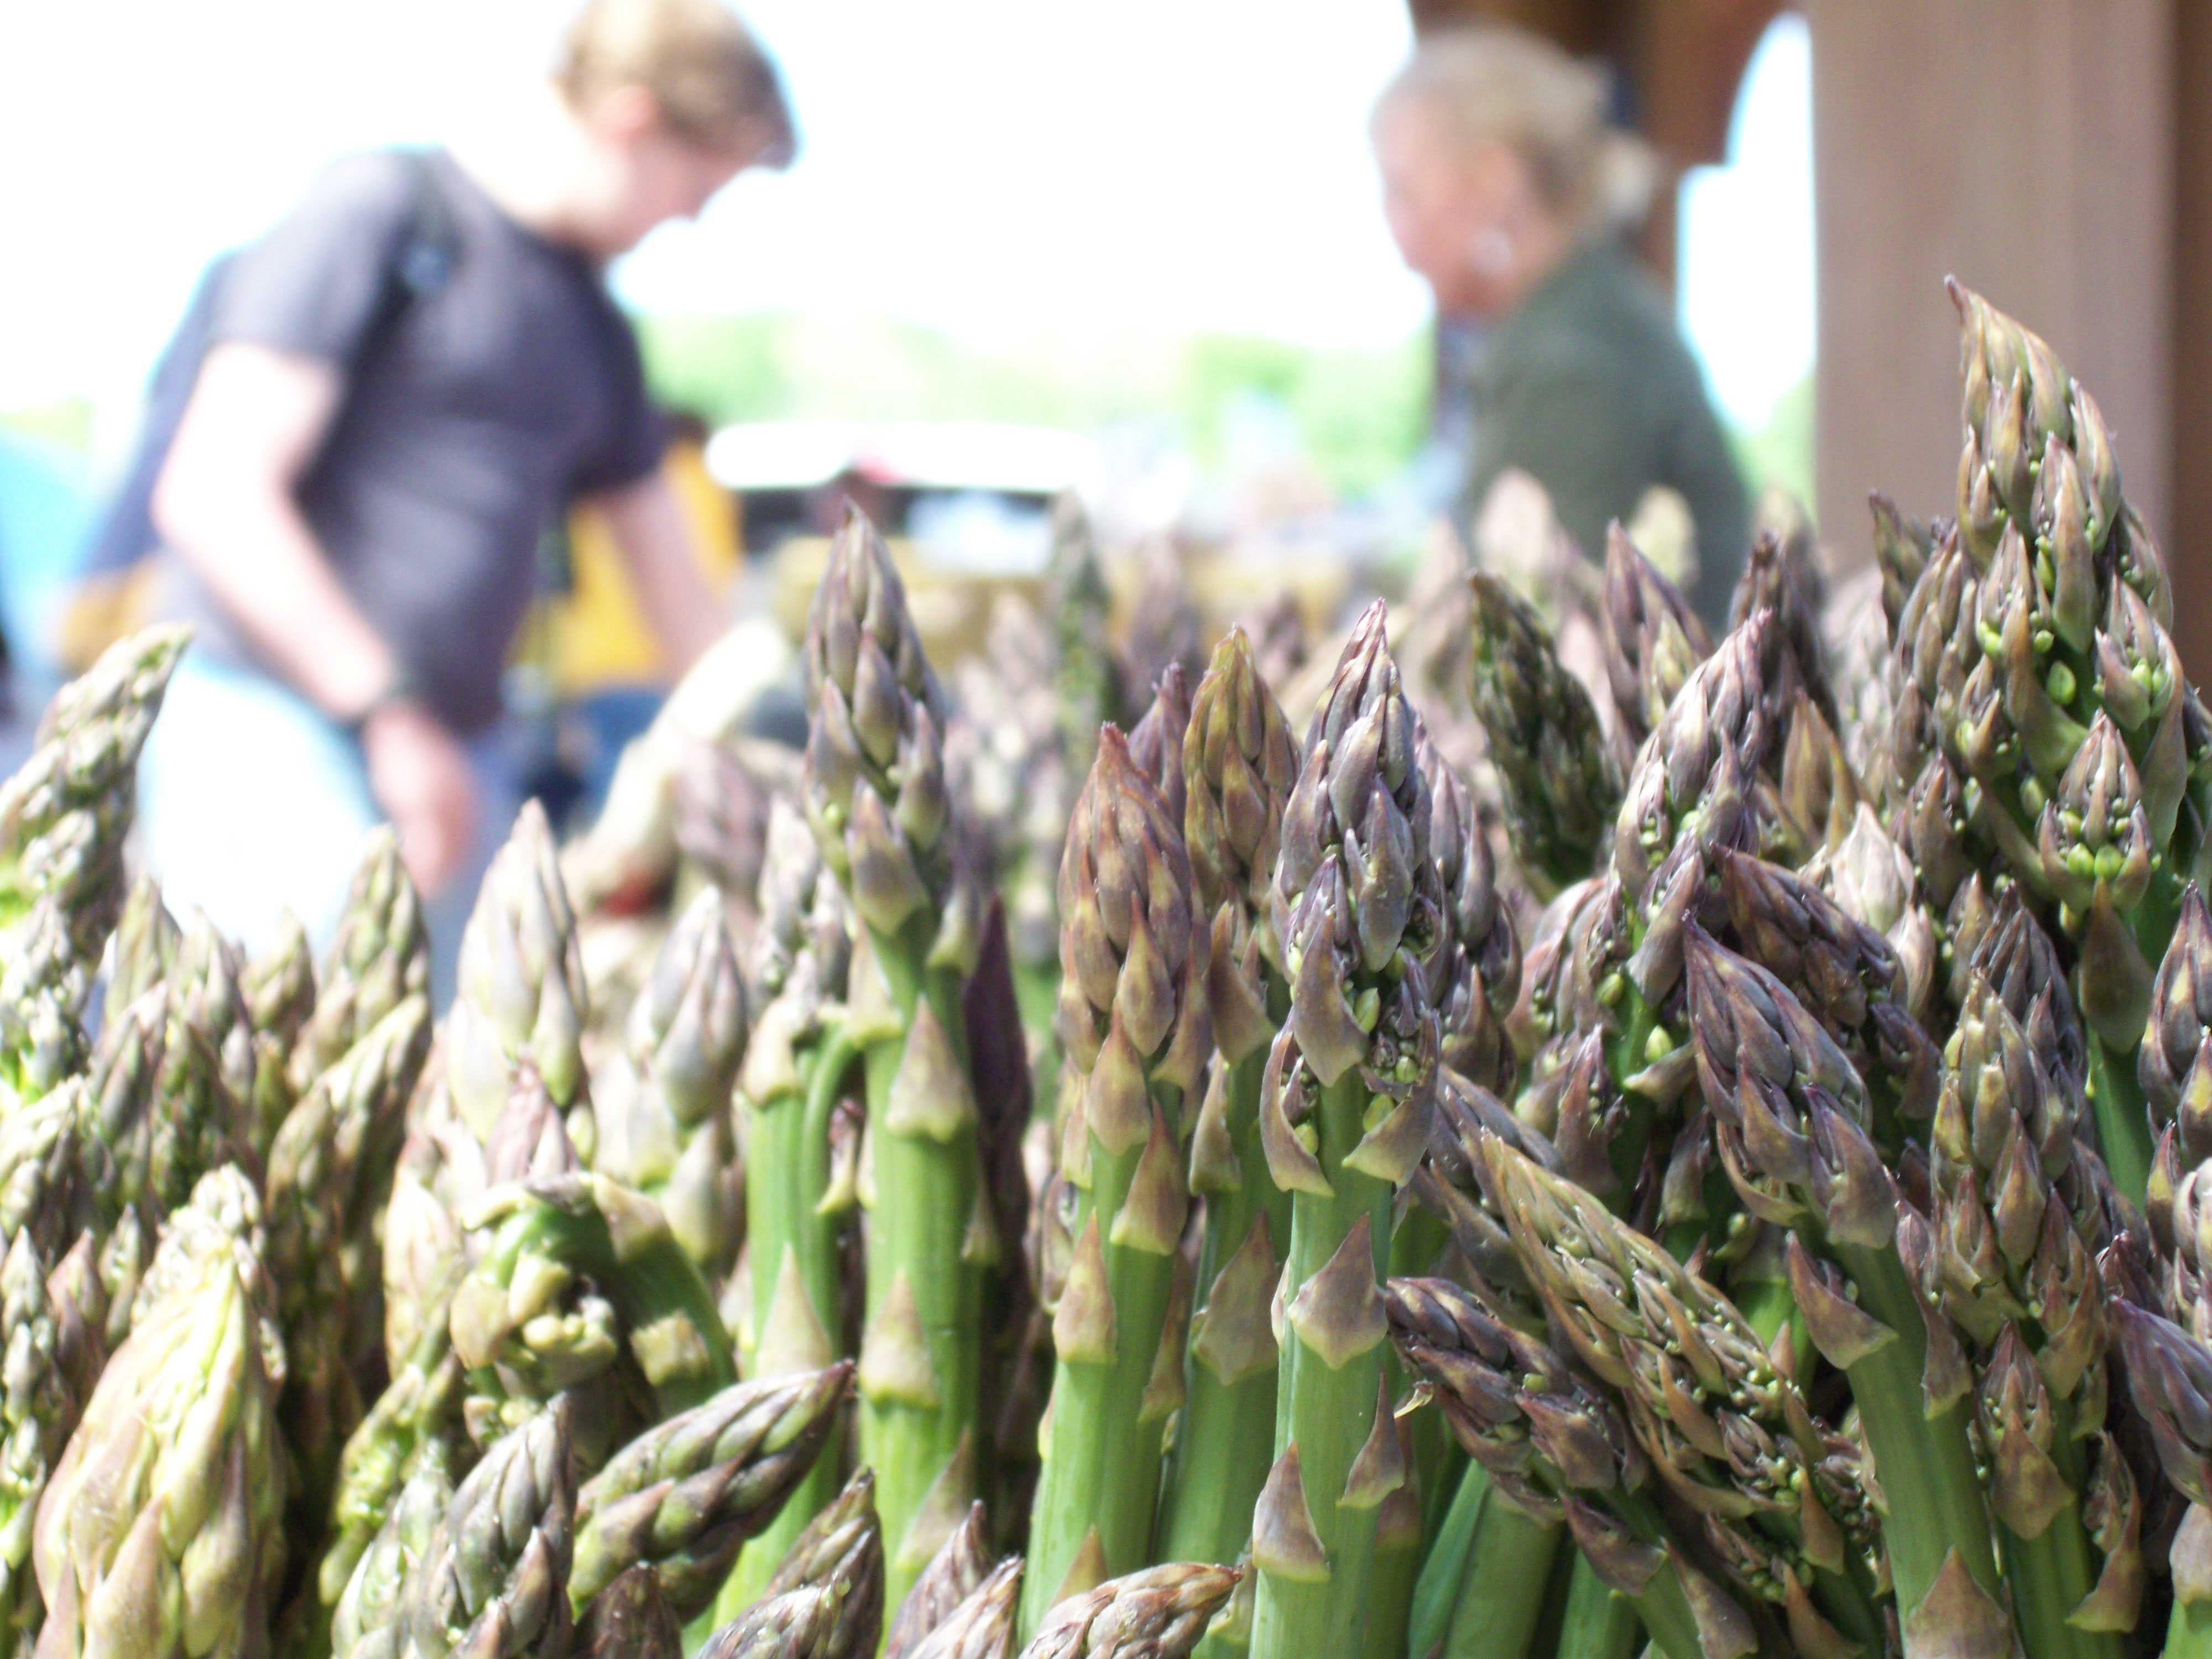 This is a picture of asparagus.